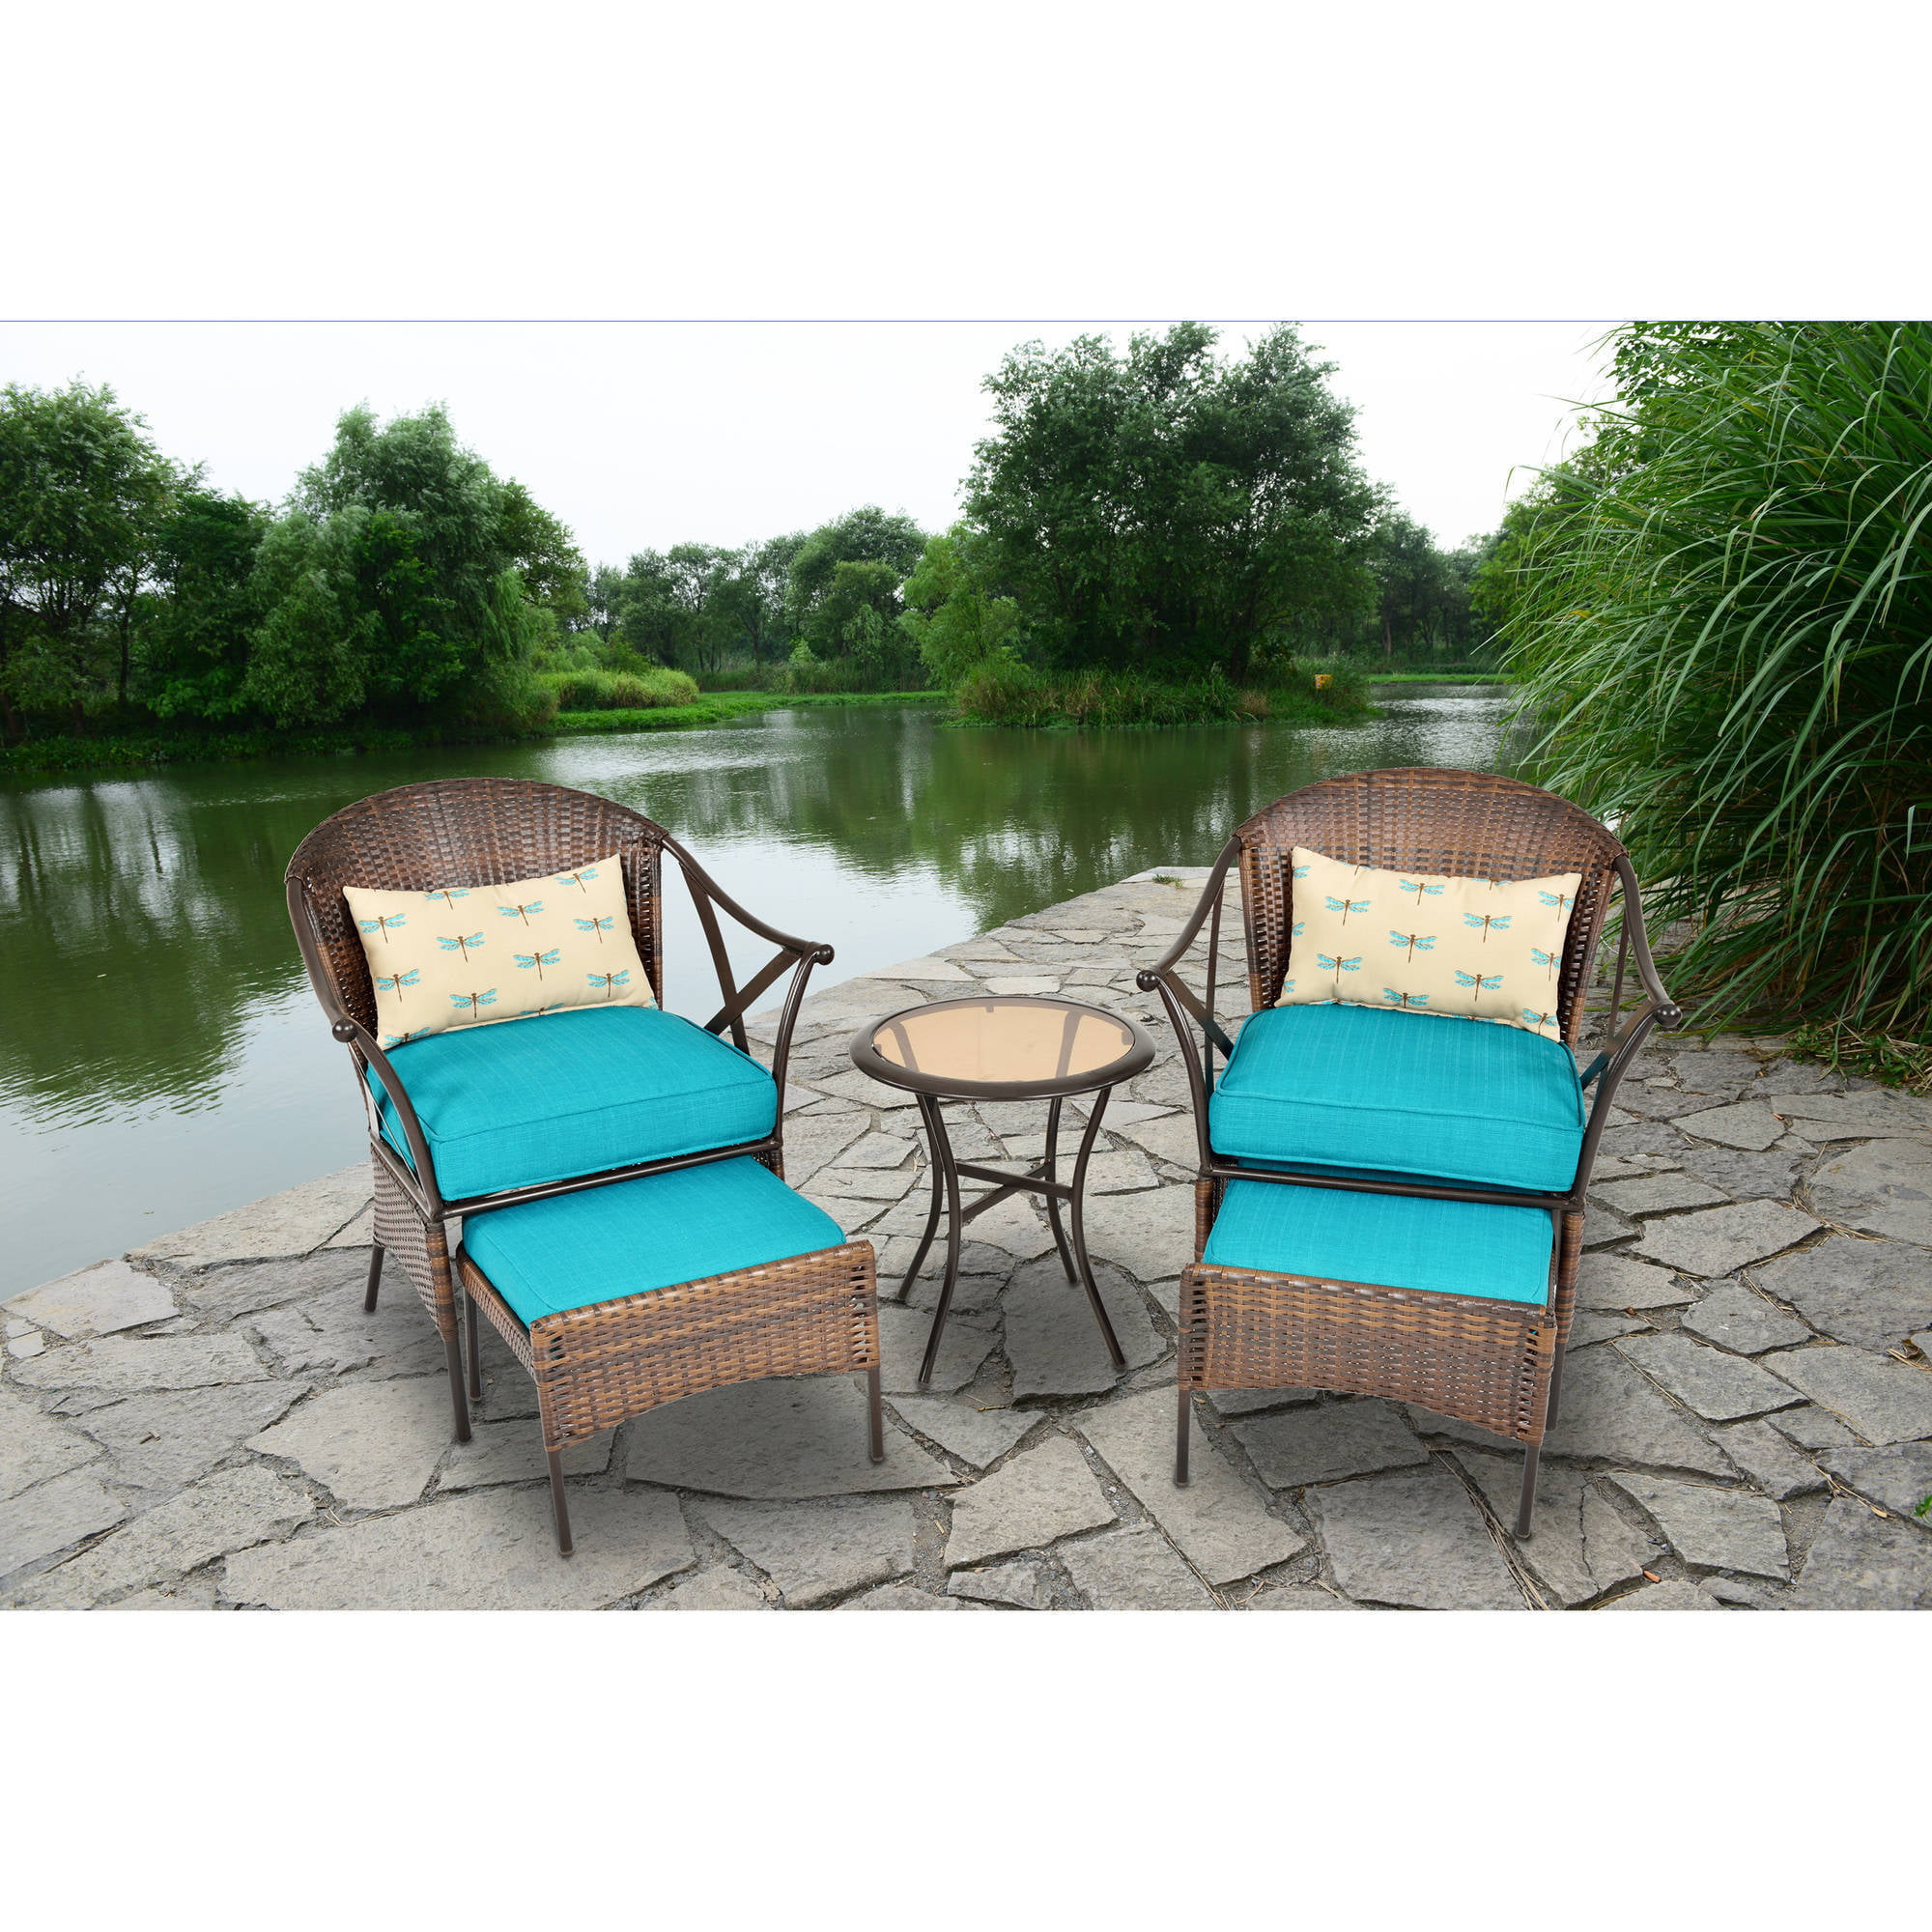 DEAL!!! 3 PS Outdoor Rattan Patio Furniture Set Backyard Garden ...